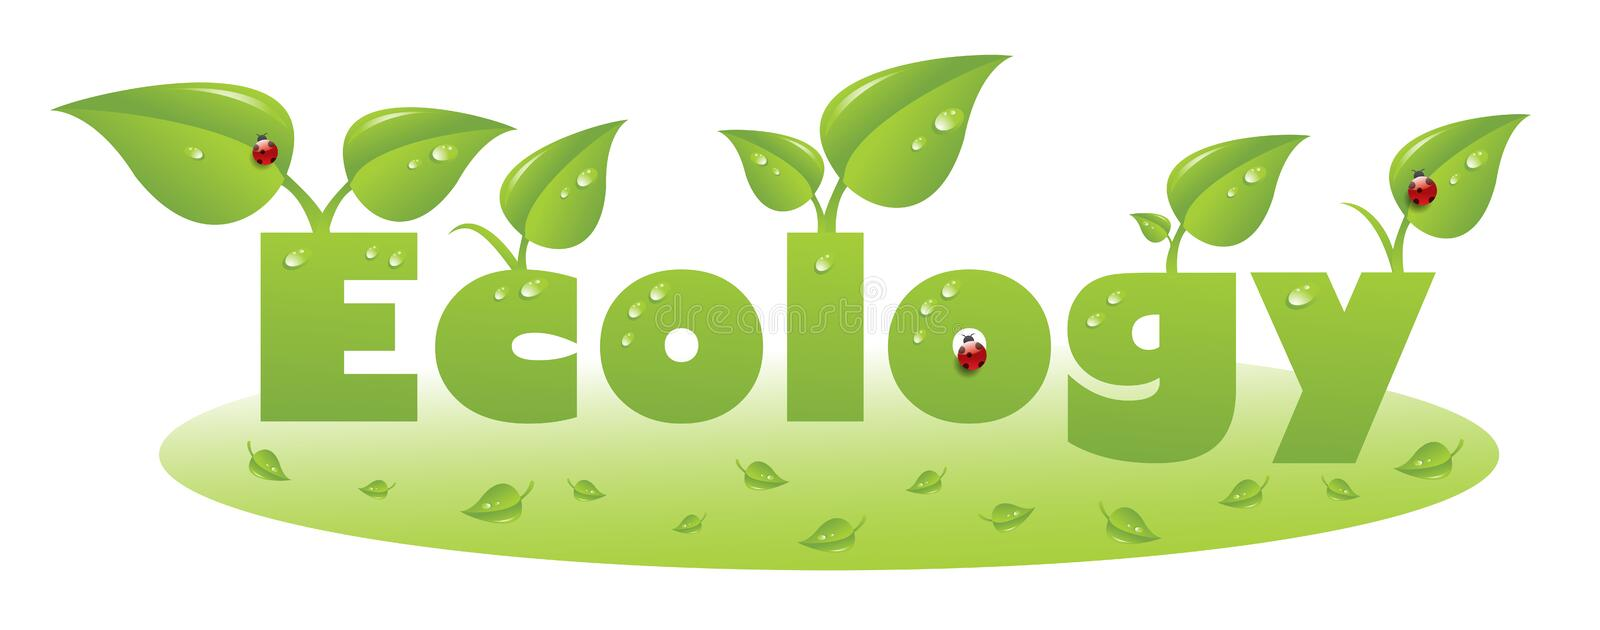 Ecology text caption with ladybug and green leaves royalty free illustration